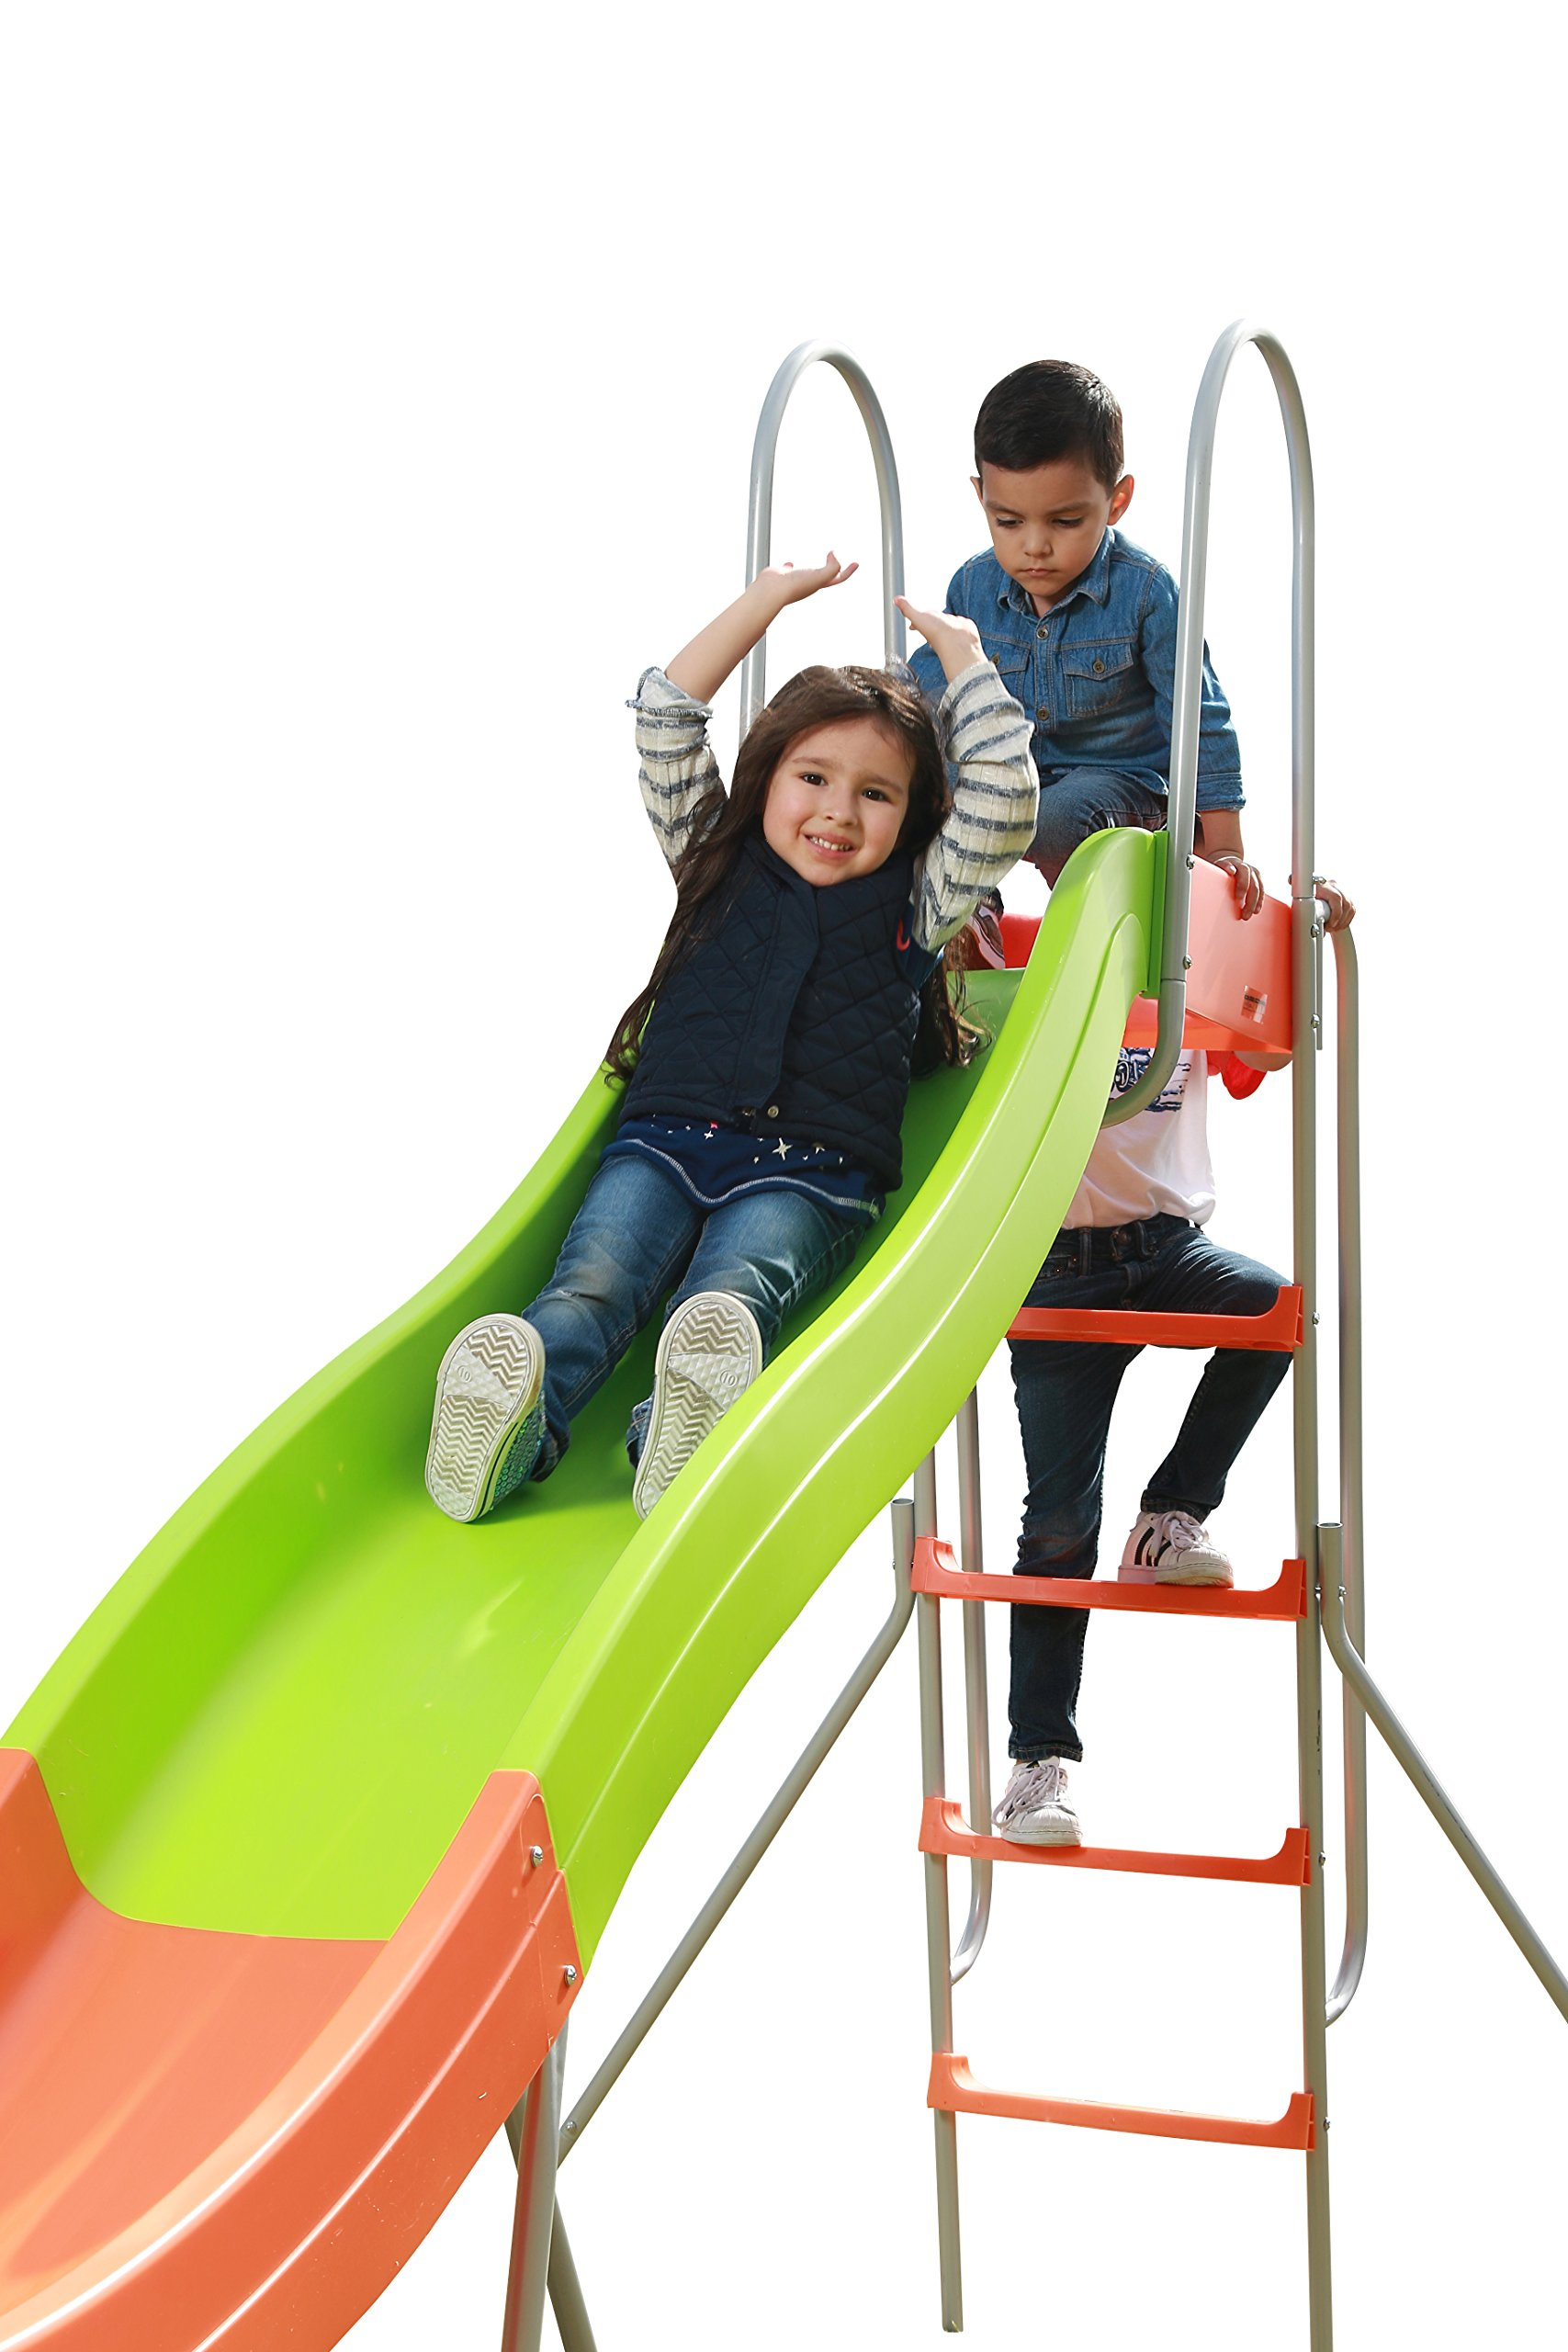 SLIDEWHIZZER 10ft Water Wavy Slide - Outdoor Playset and Toys for your kids, children, toddlers, preschool, boys or girls, Backyard Playground for Birthday/Easter/Parties